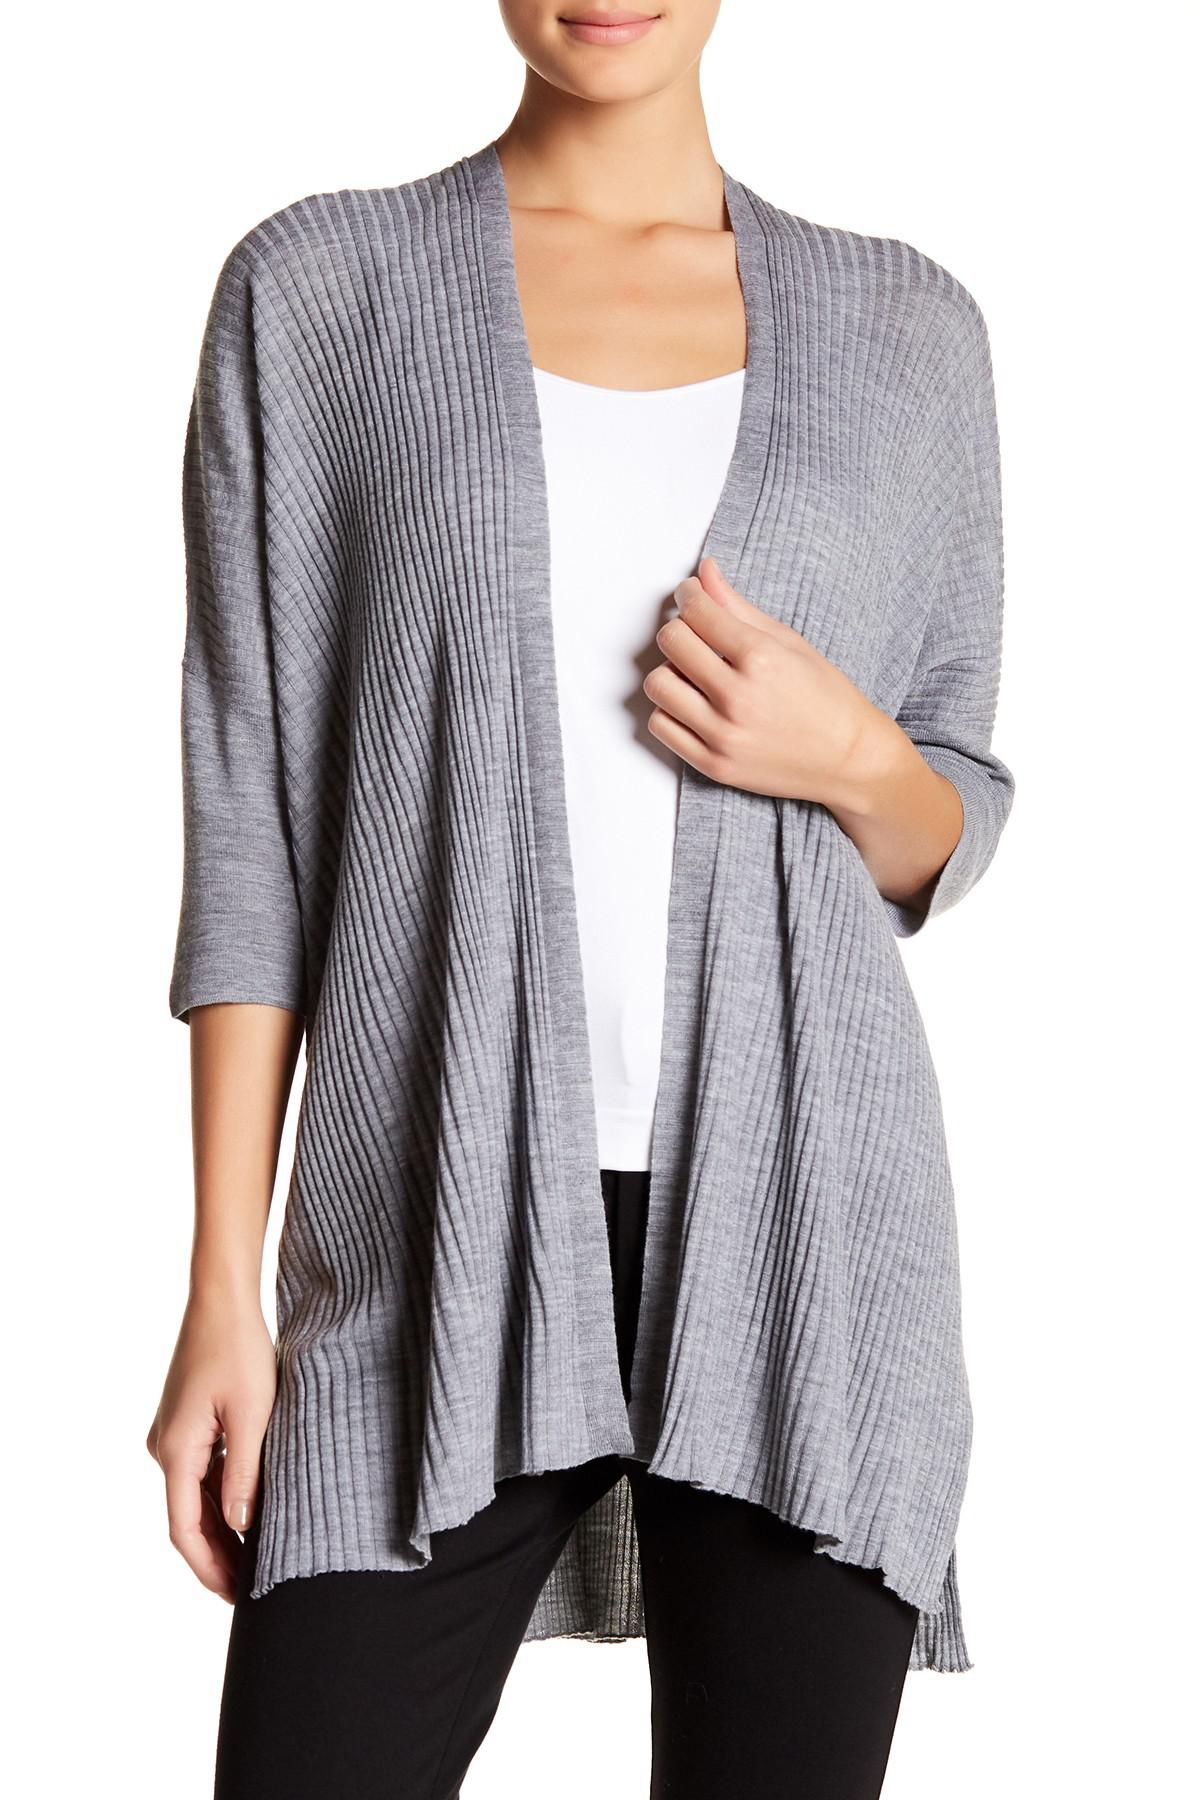 5fc847e28c39a Lyst - Eileen Fisher Boxy Ribbed Merino Wool Cardigan in Gray